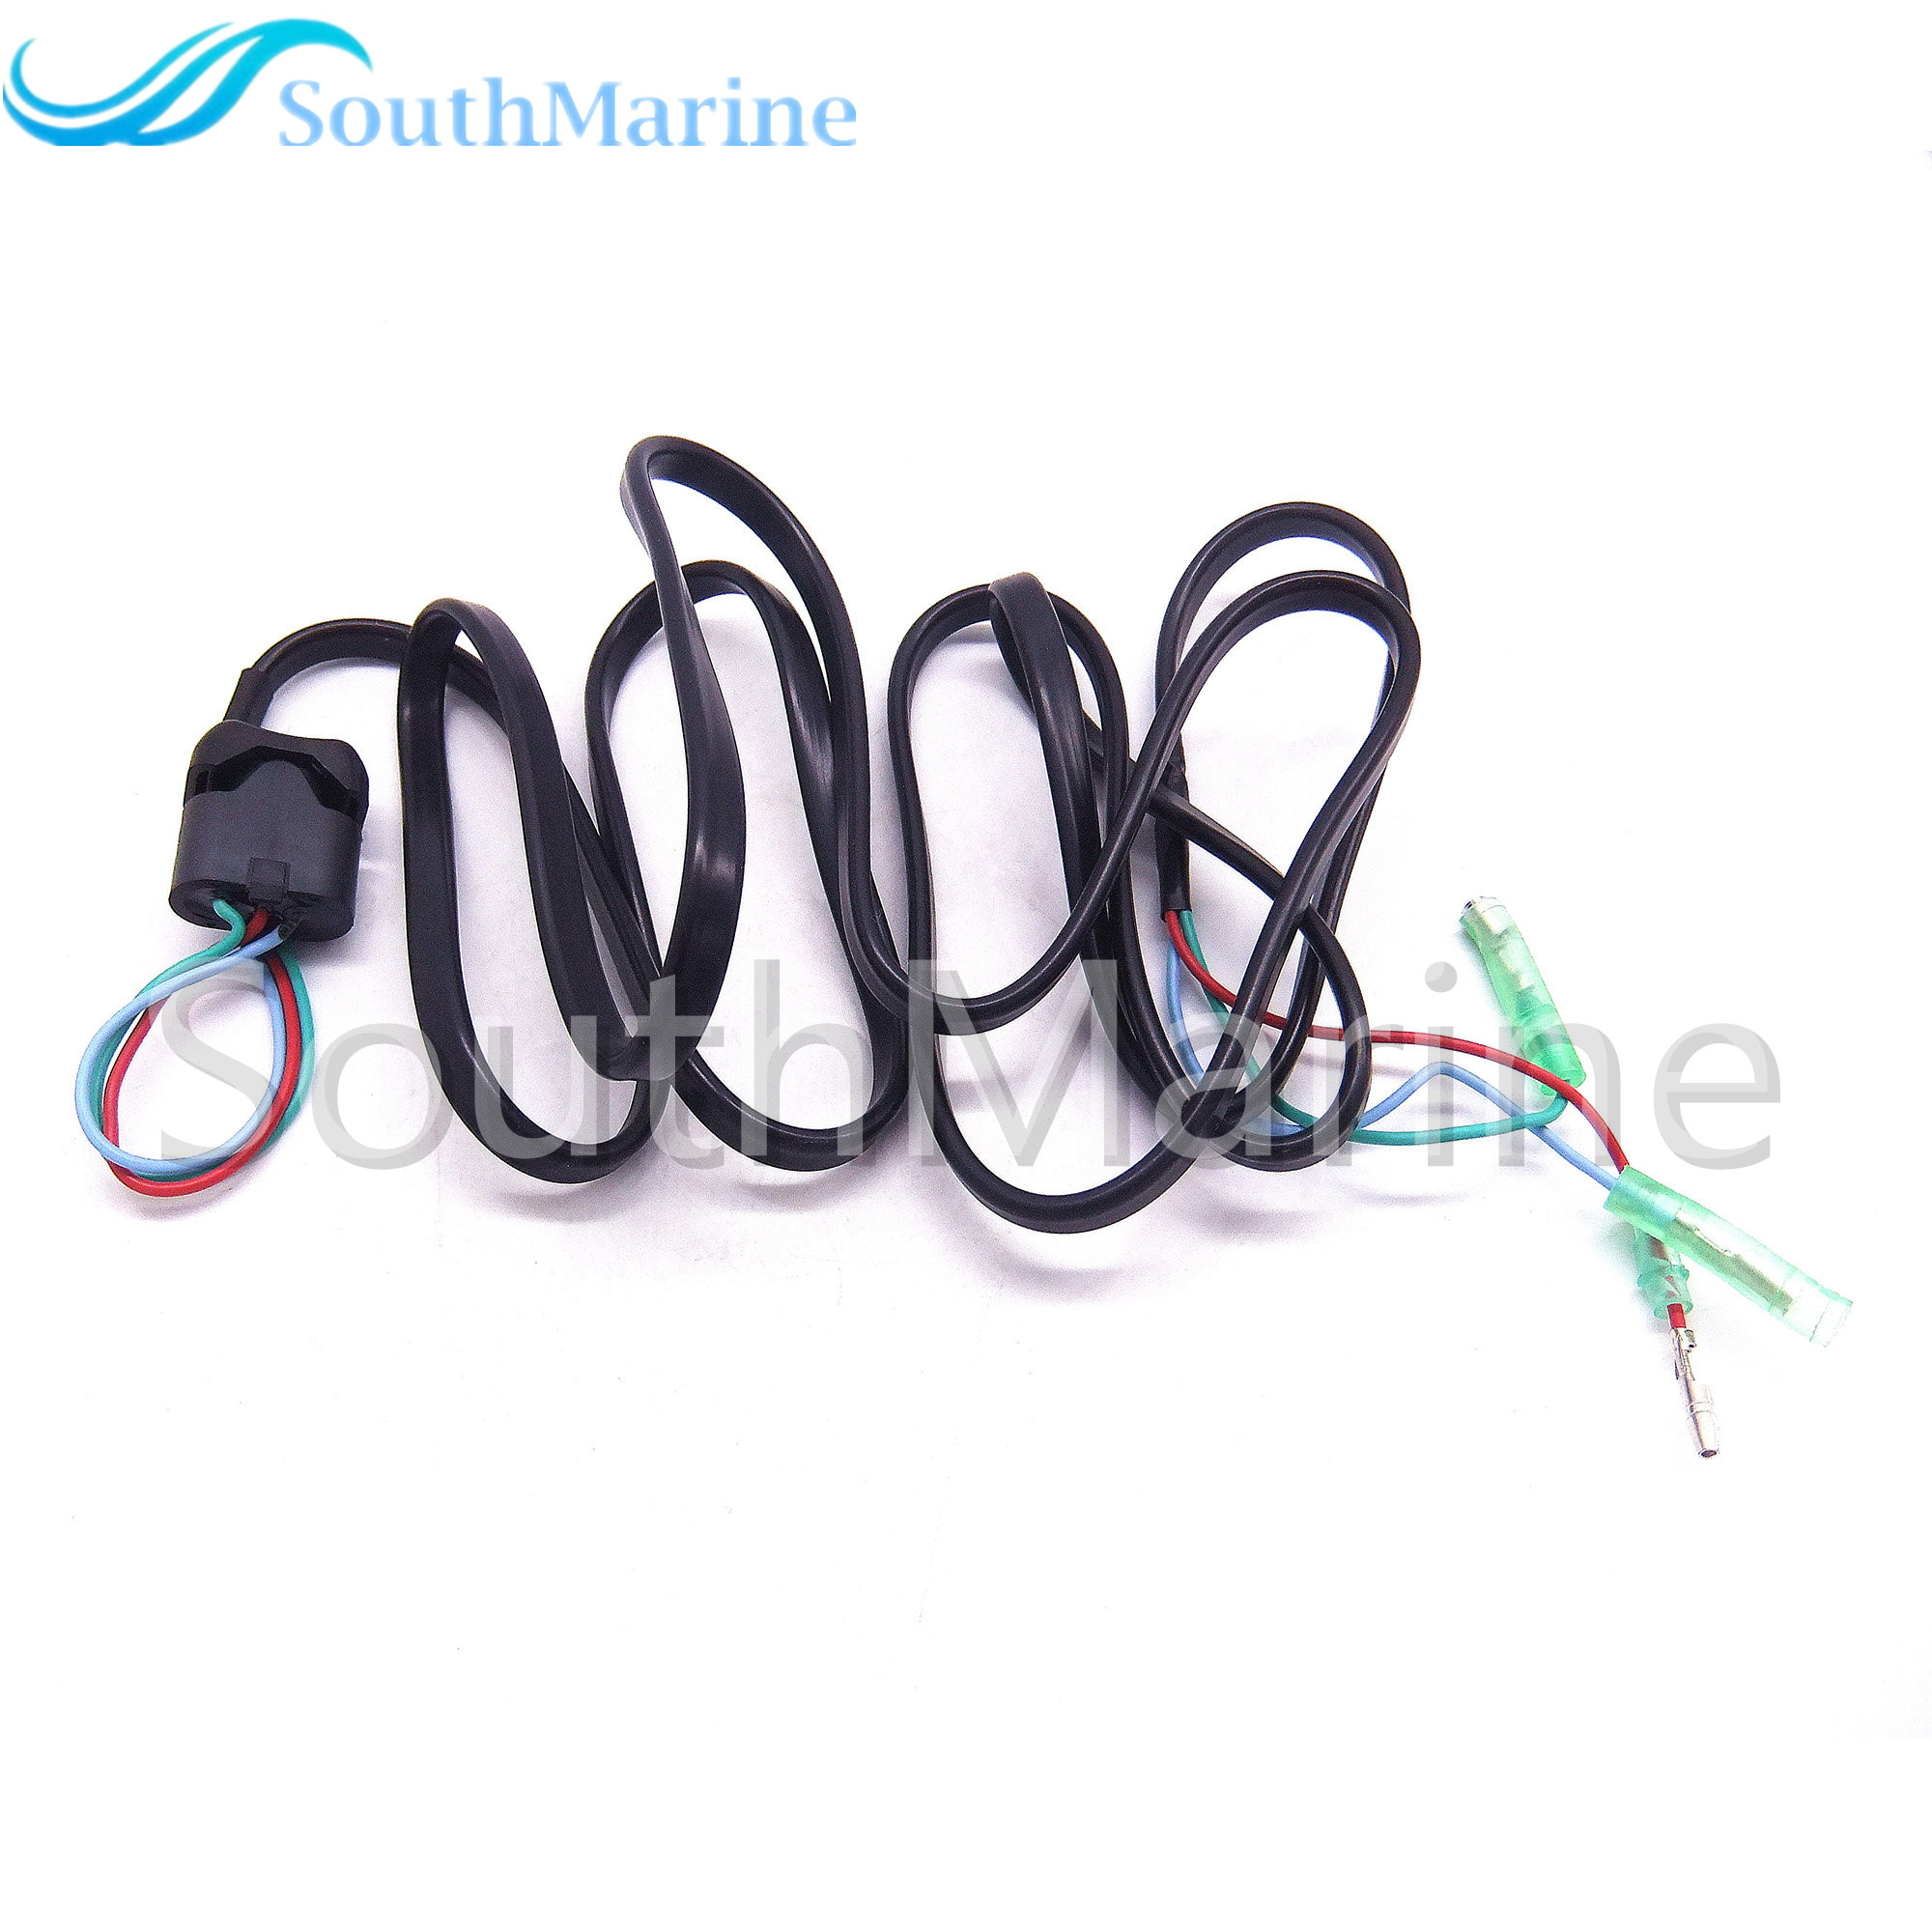 704-82563 Trim and Tilt Switch for Yamaha Outboard Remote Control Box